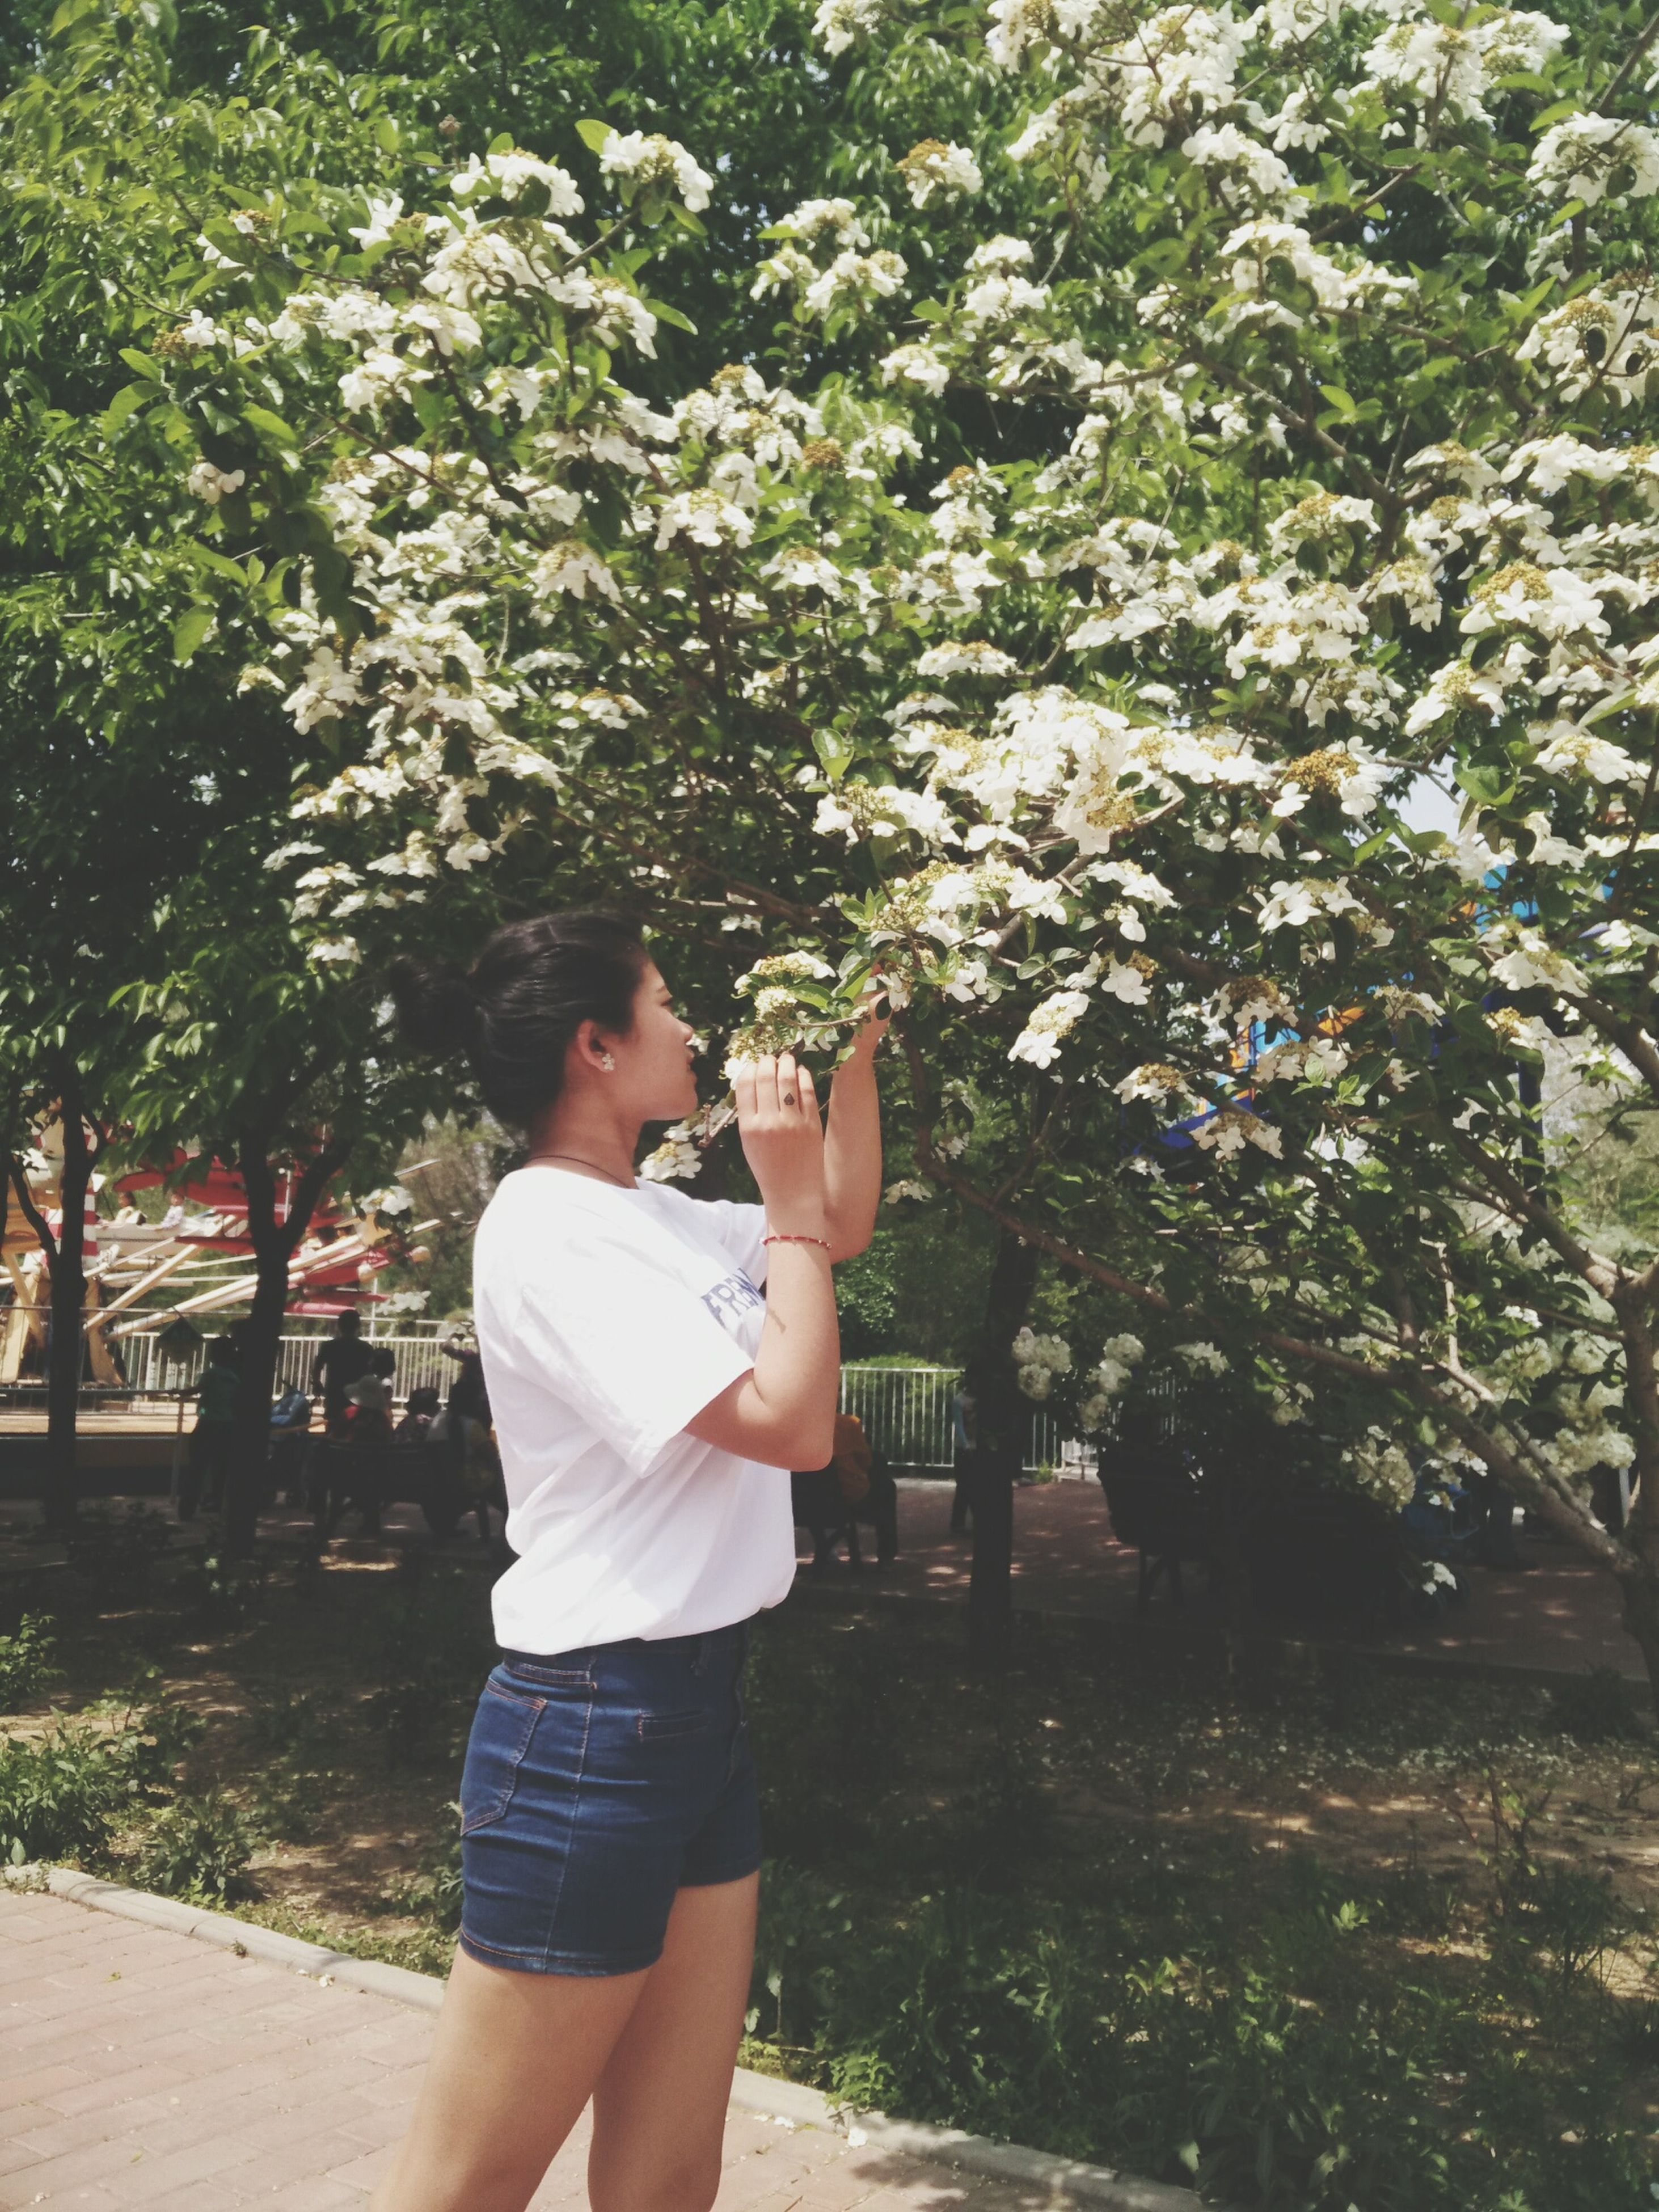 lifestyles, person, tree, casual clothing, leisure activity, park - man made space, flower, young adult, standing, growth, full length, young women, three quarter length, childhood, holding, elementary age, girls, front view